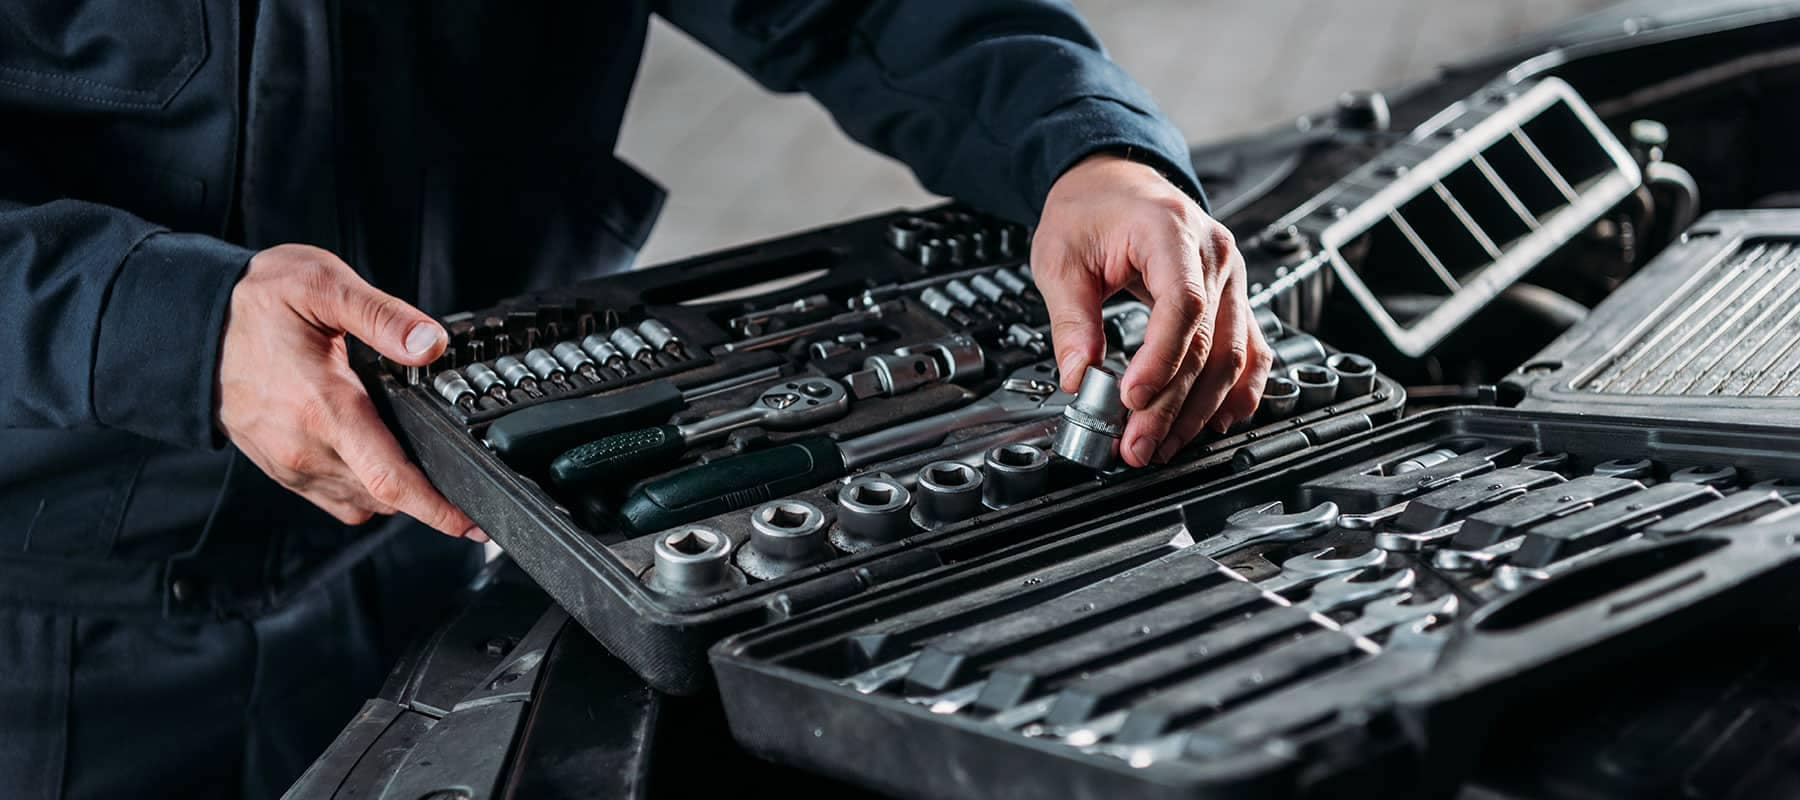 picture of service technician's hands pulling tools out of toolbox